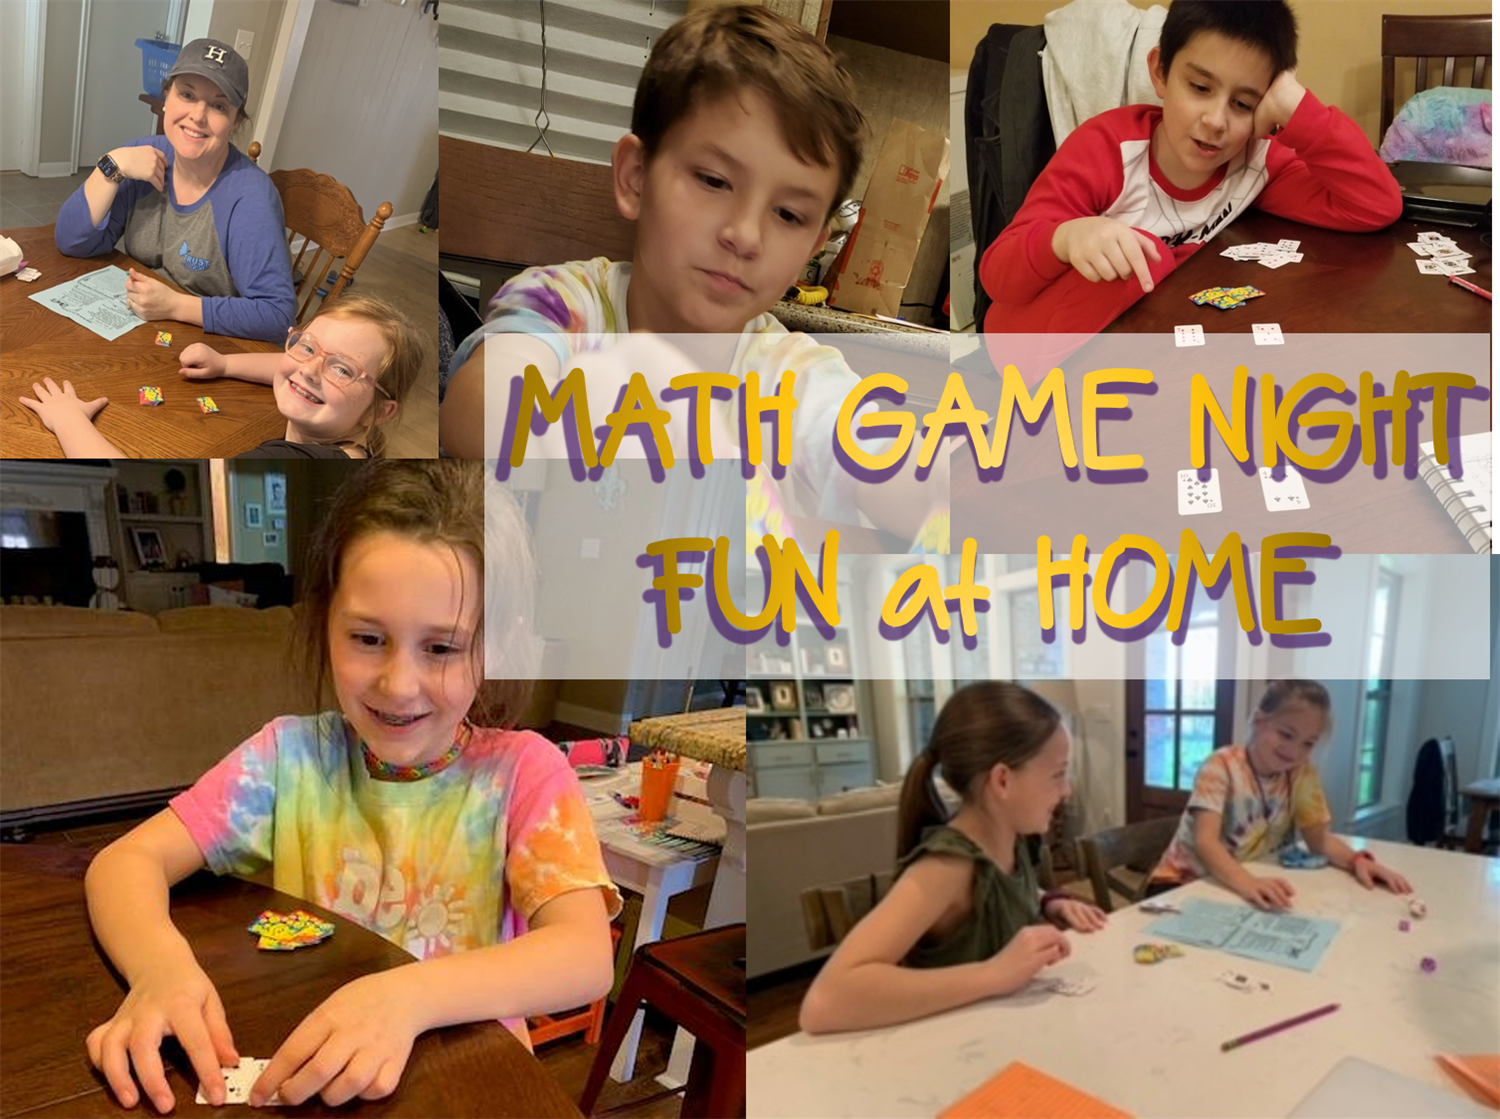 Math Game Night @ Home - Our Broncos (and their parents) had a blast playing math games at home as part of our Math Game Night @ Home event!